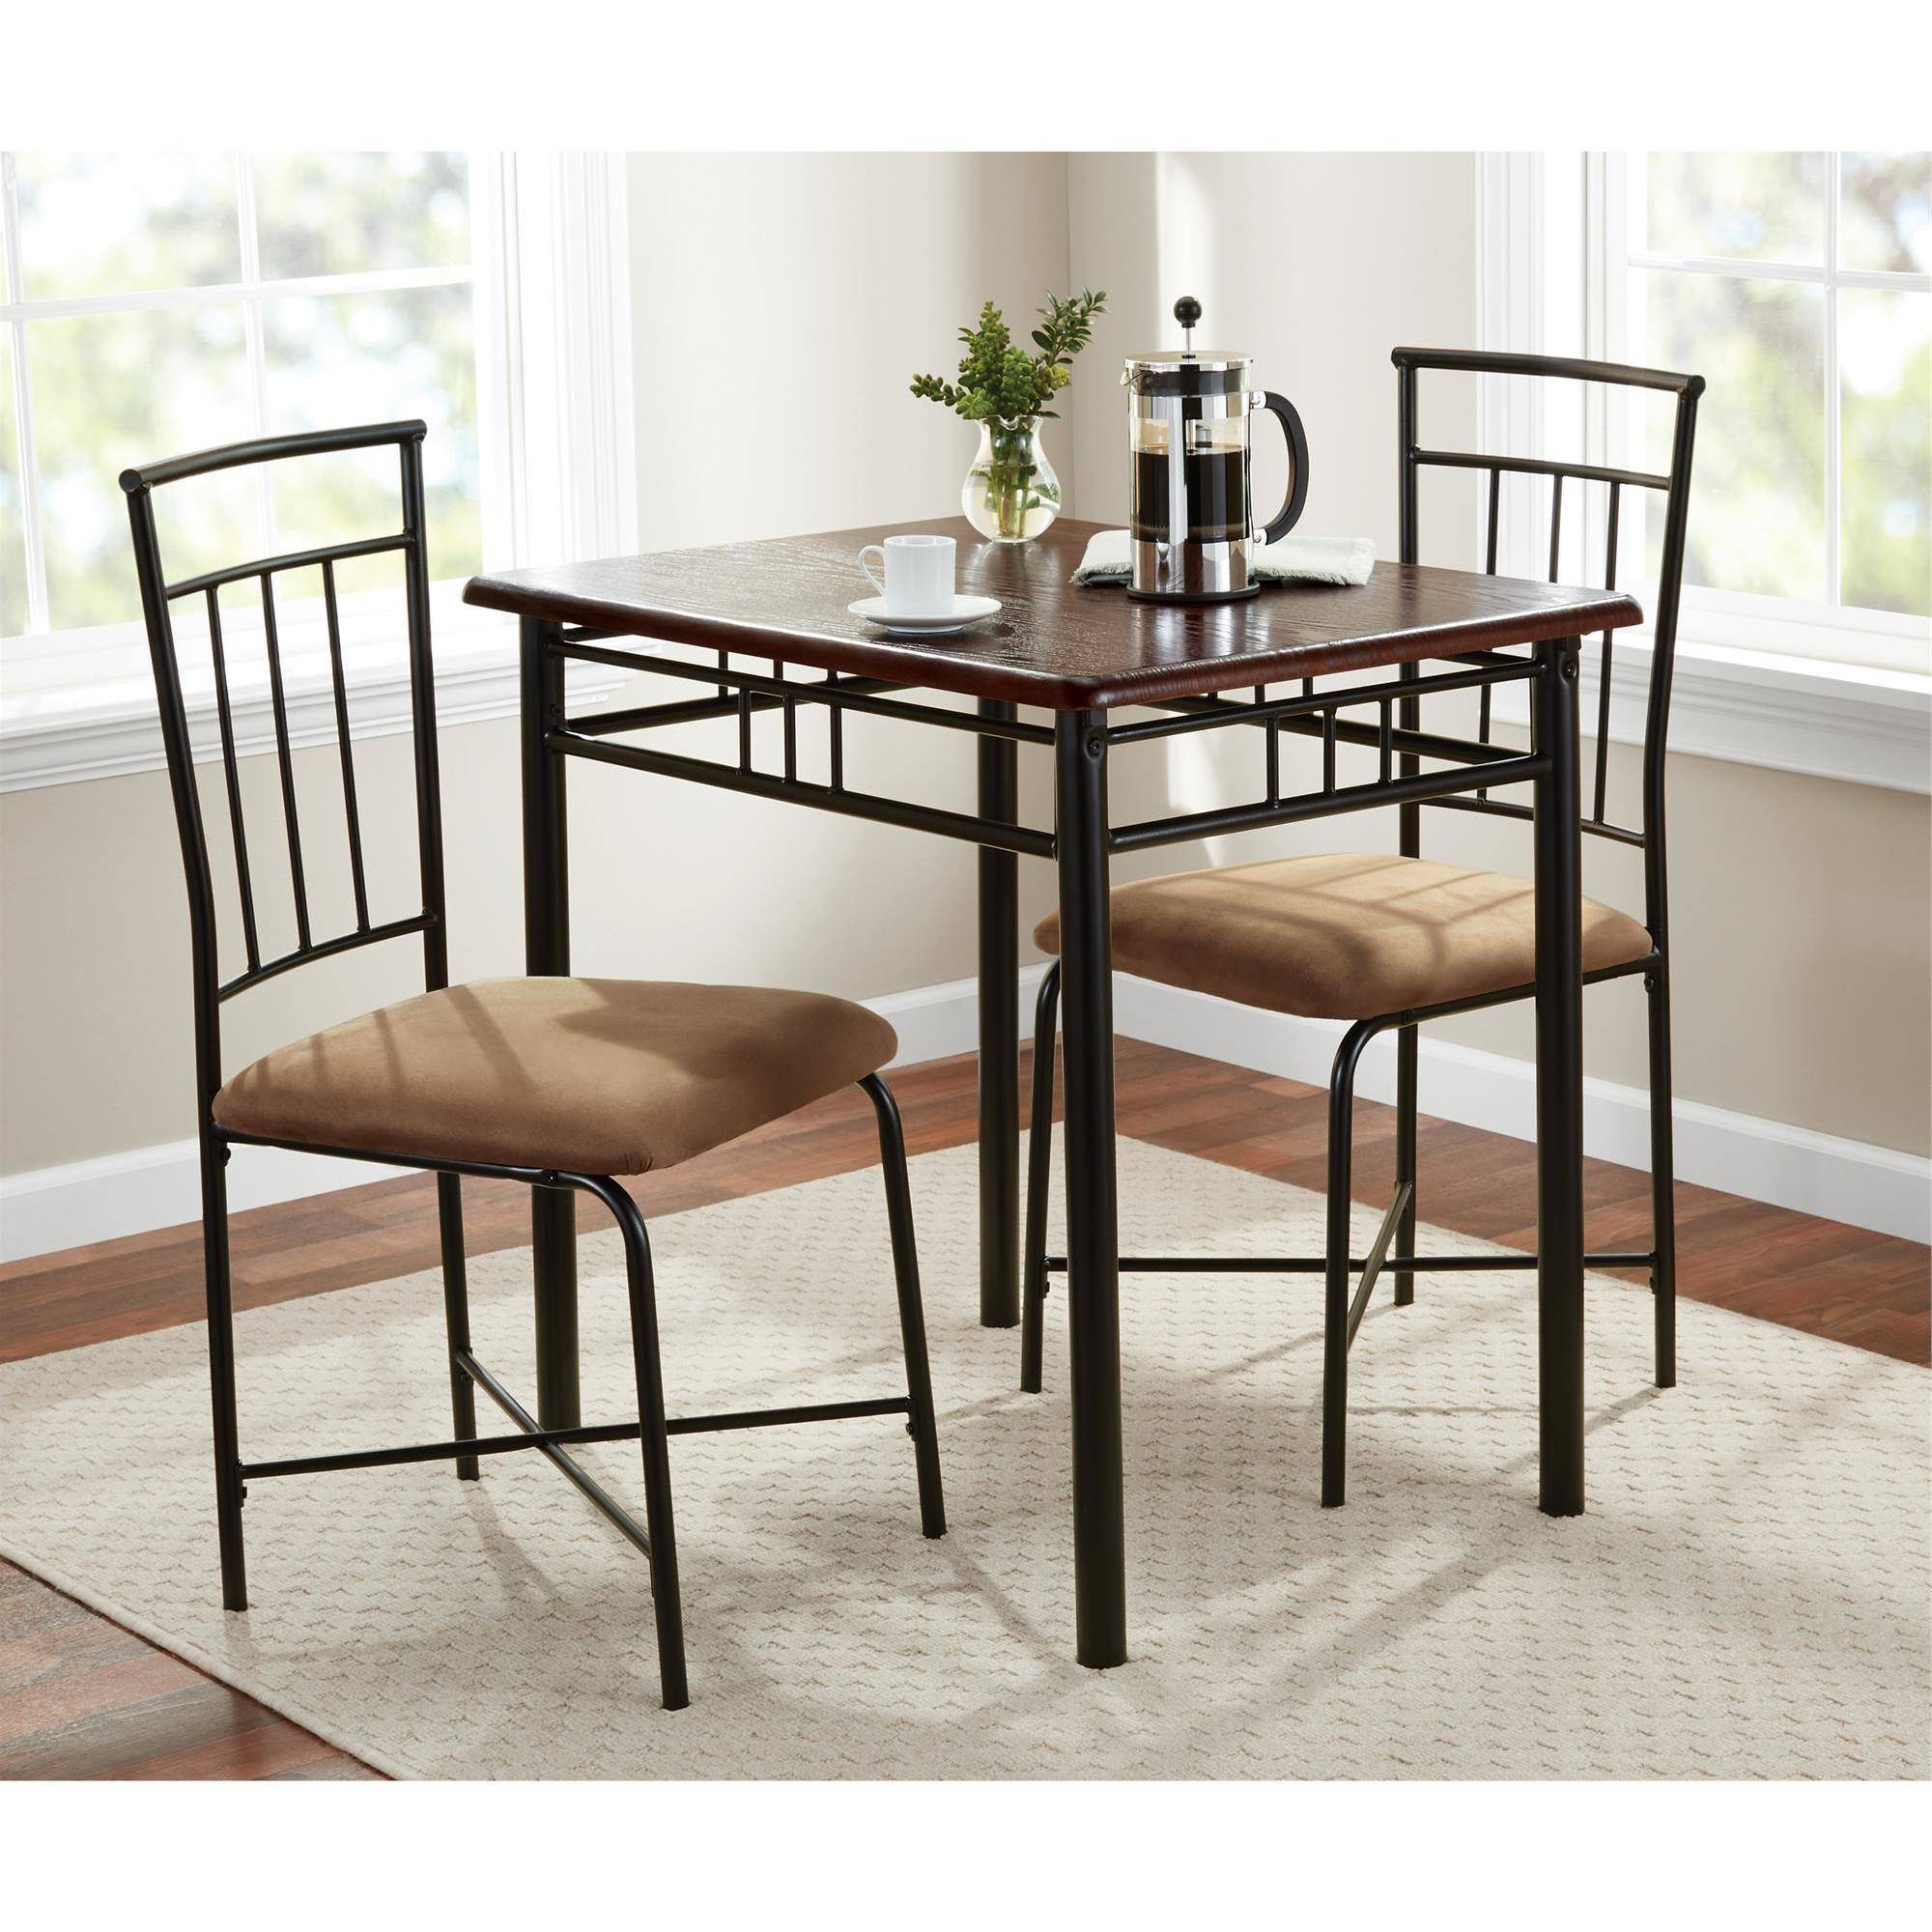 Mainstays 3 Piece Dining Set, Wood And Metal – Walmart For Best And Newest Bearden 3 Piece Dining Sets (View 15 of 25)